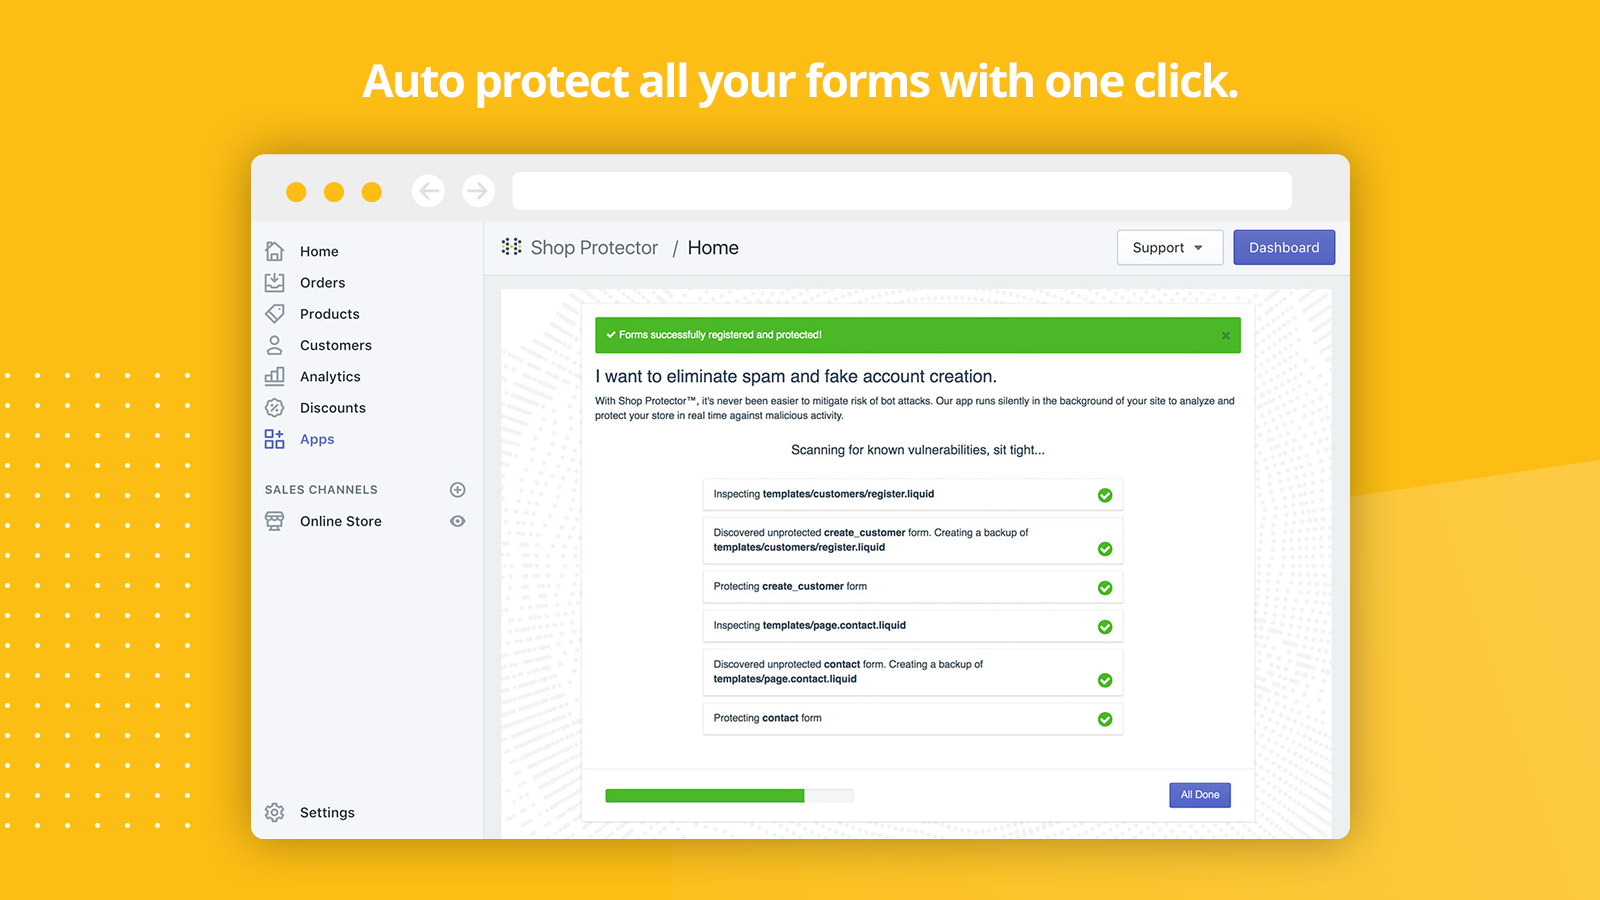 Auto protect all of your forms from spam with one click.